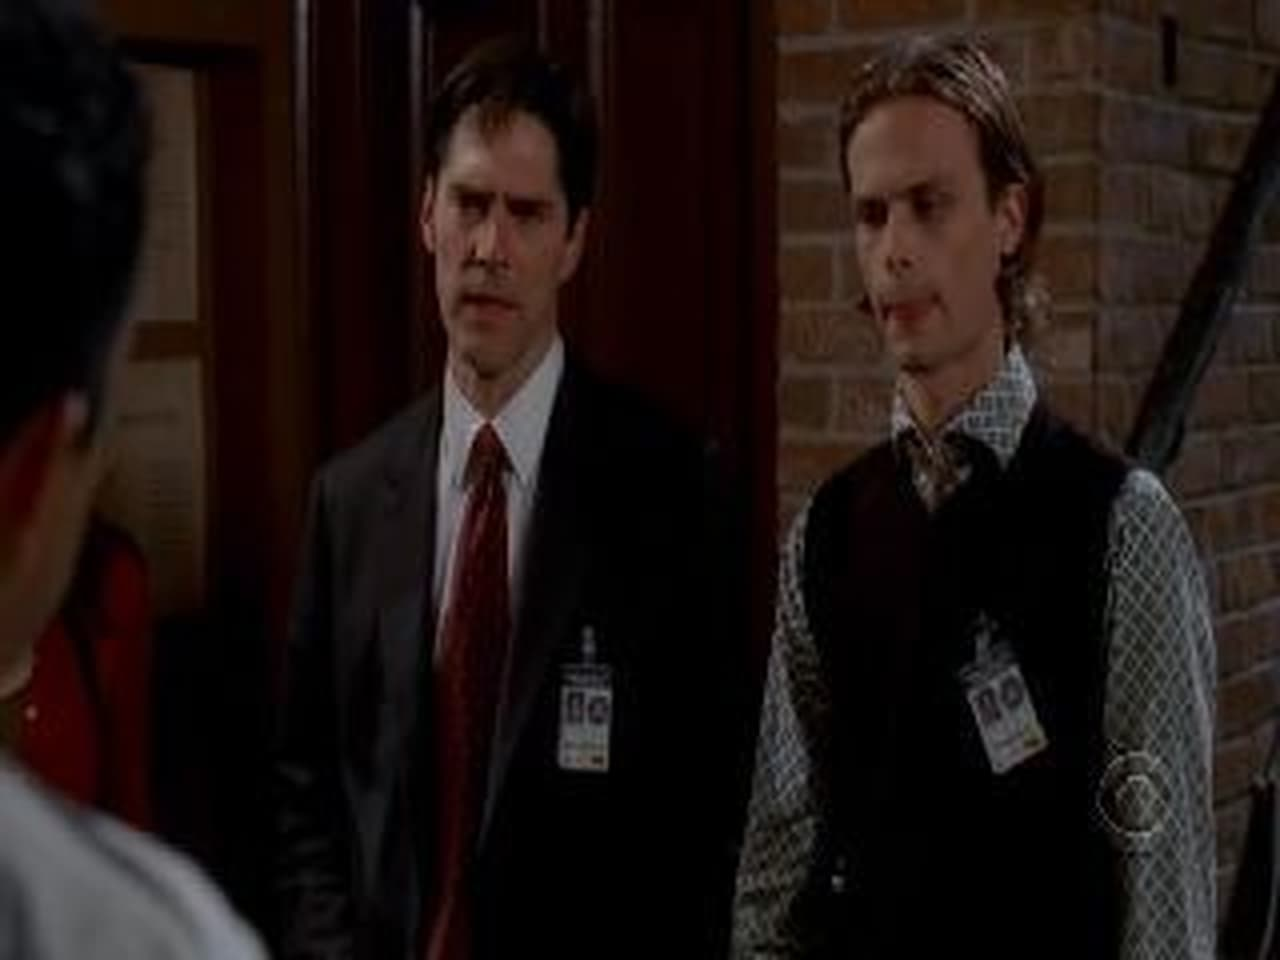 Criminal Minds - Season 1 Episode 19 : Machismo